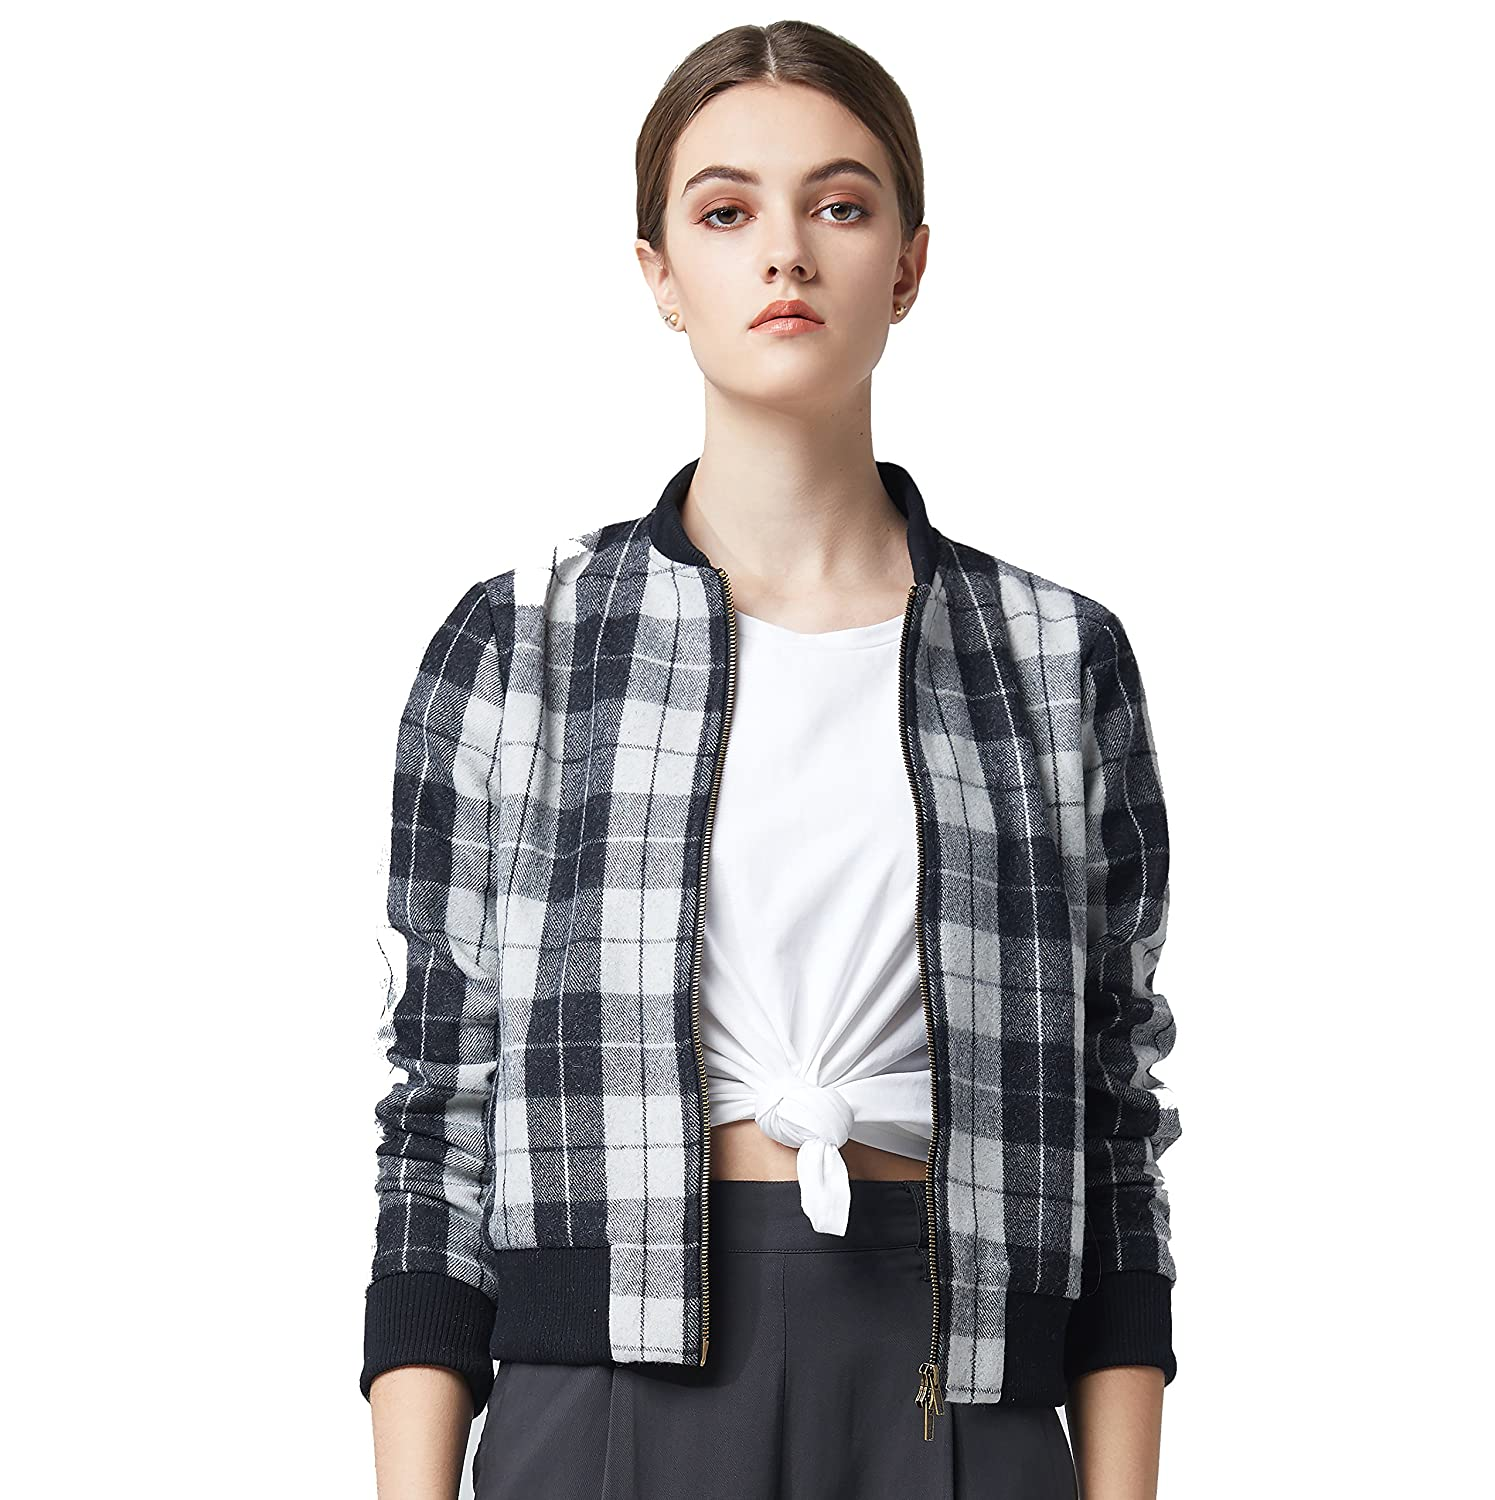 ab9434f7303 An absolute must-have for stylish fall layering with jeans